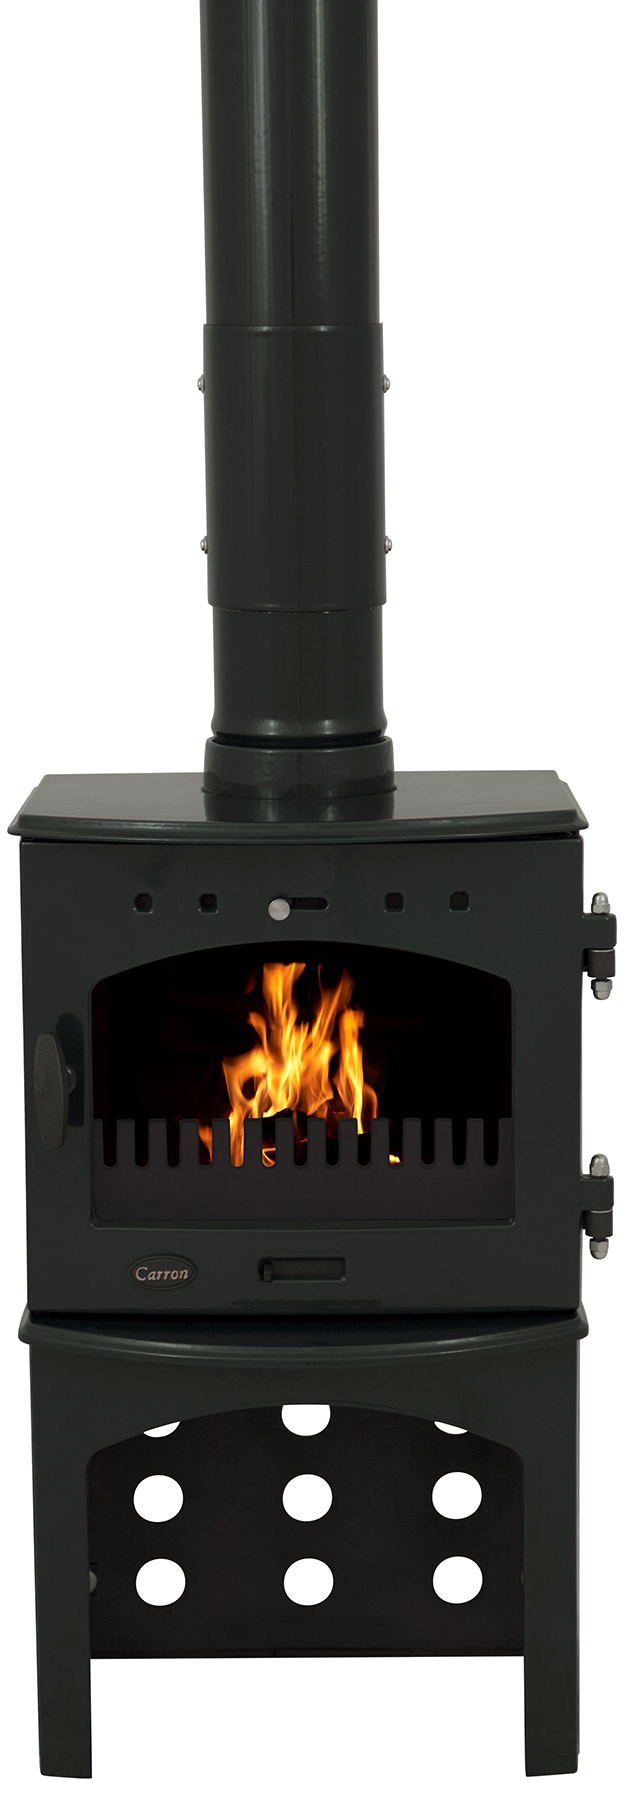 4.7KW Carron Green Enamel SE Multi Fuel Stove with Log Store